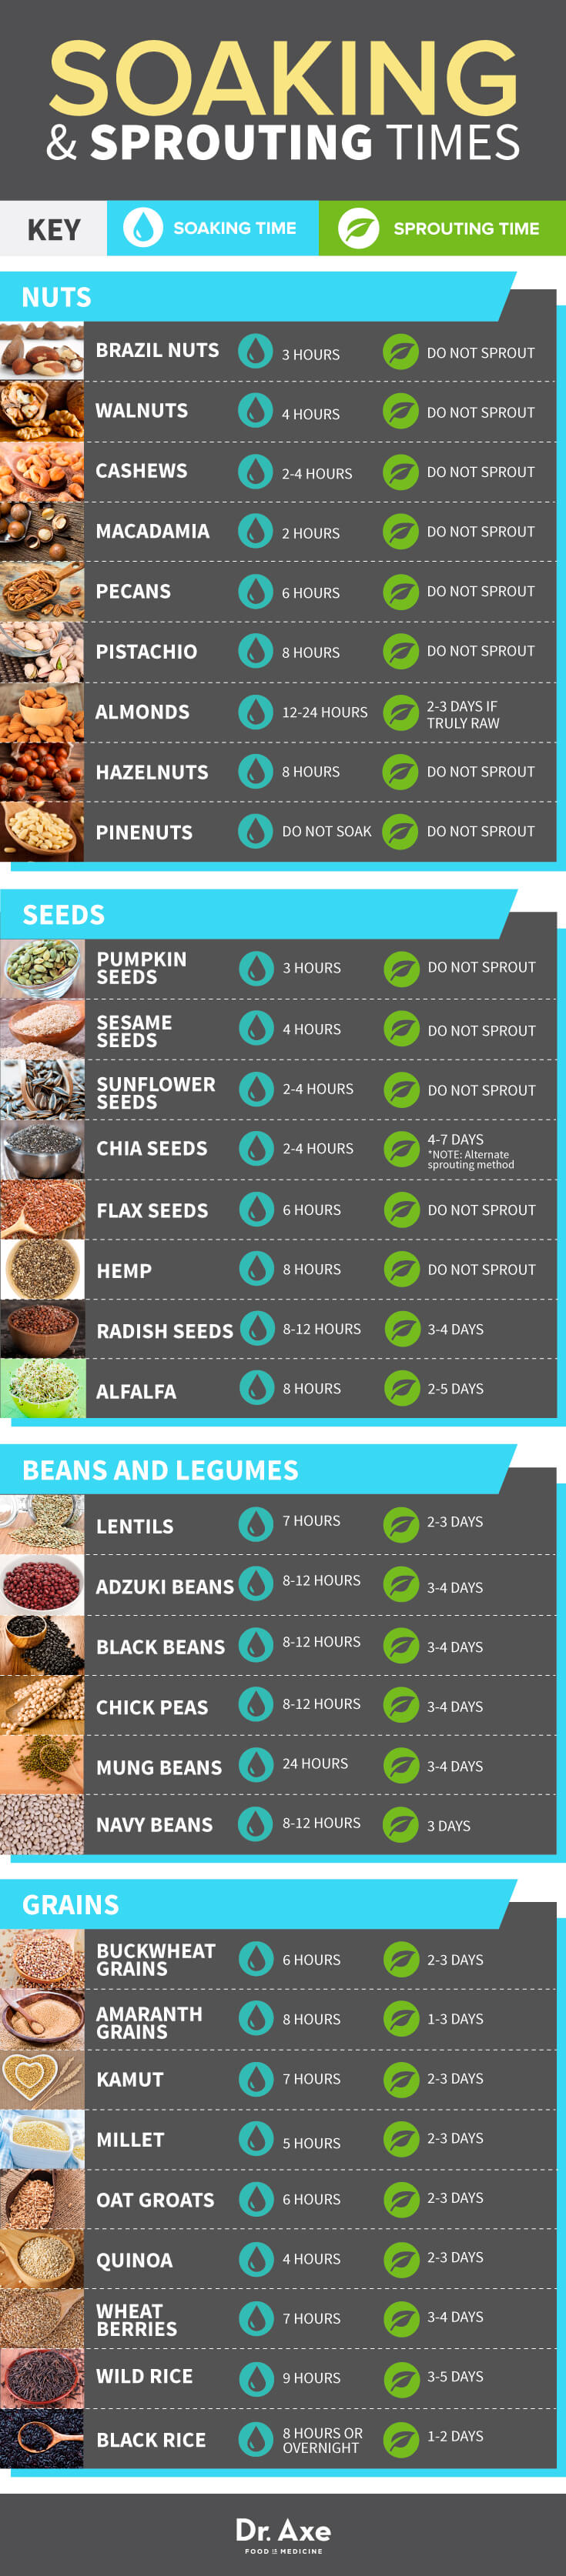 Optimal Soaking And Sprouting Times For All Your Favorite Nuts, Seeds, Legumes, And Grains Infographic